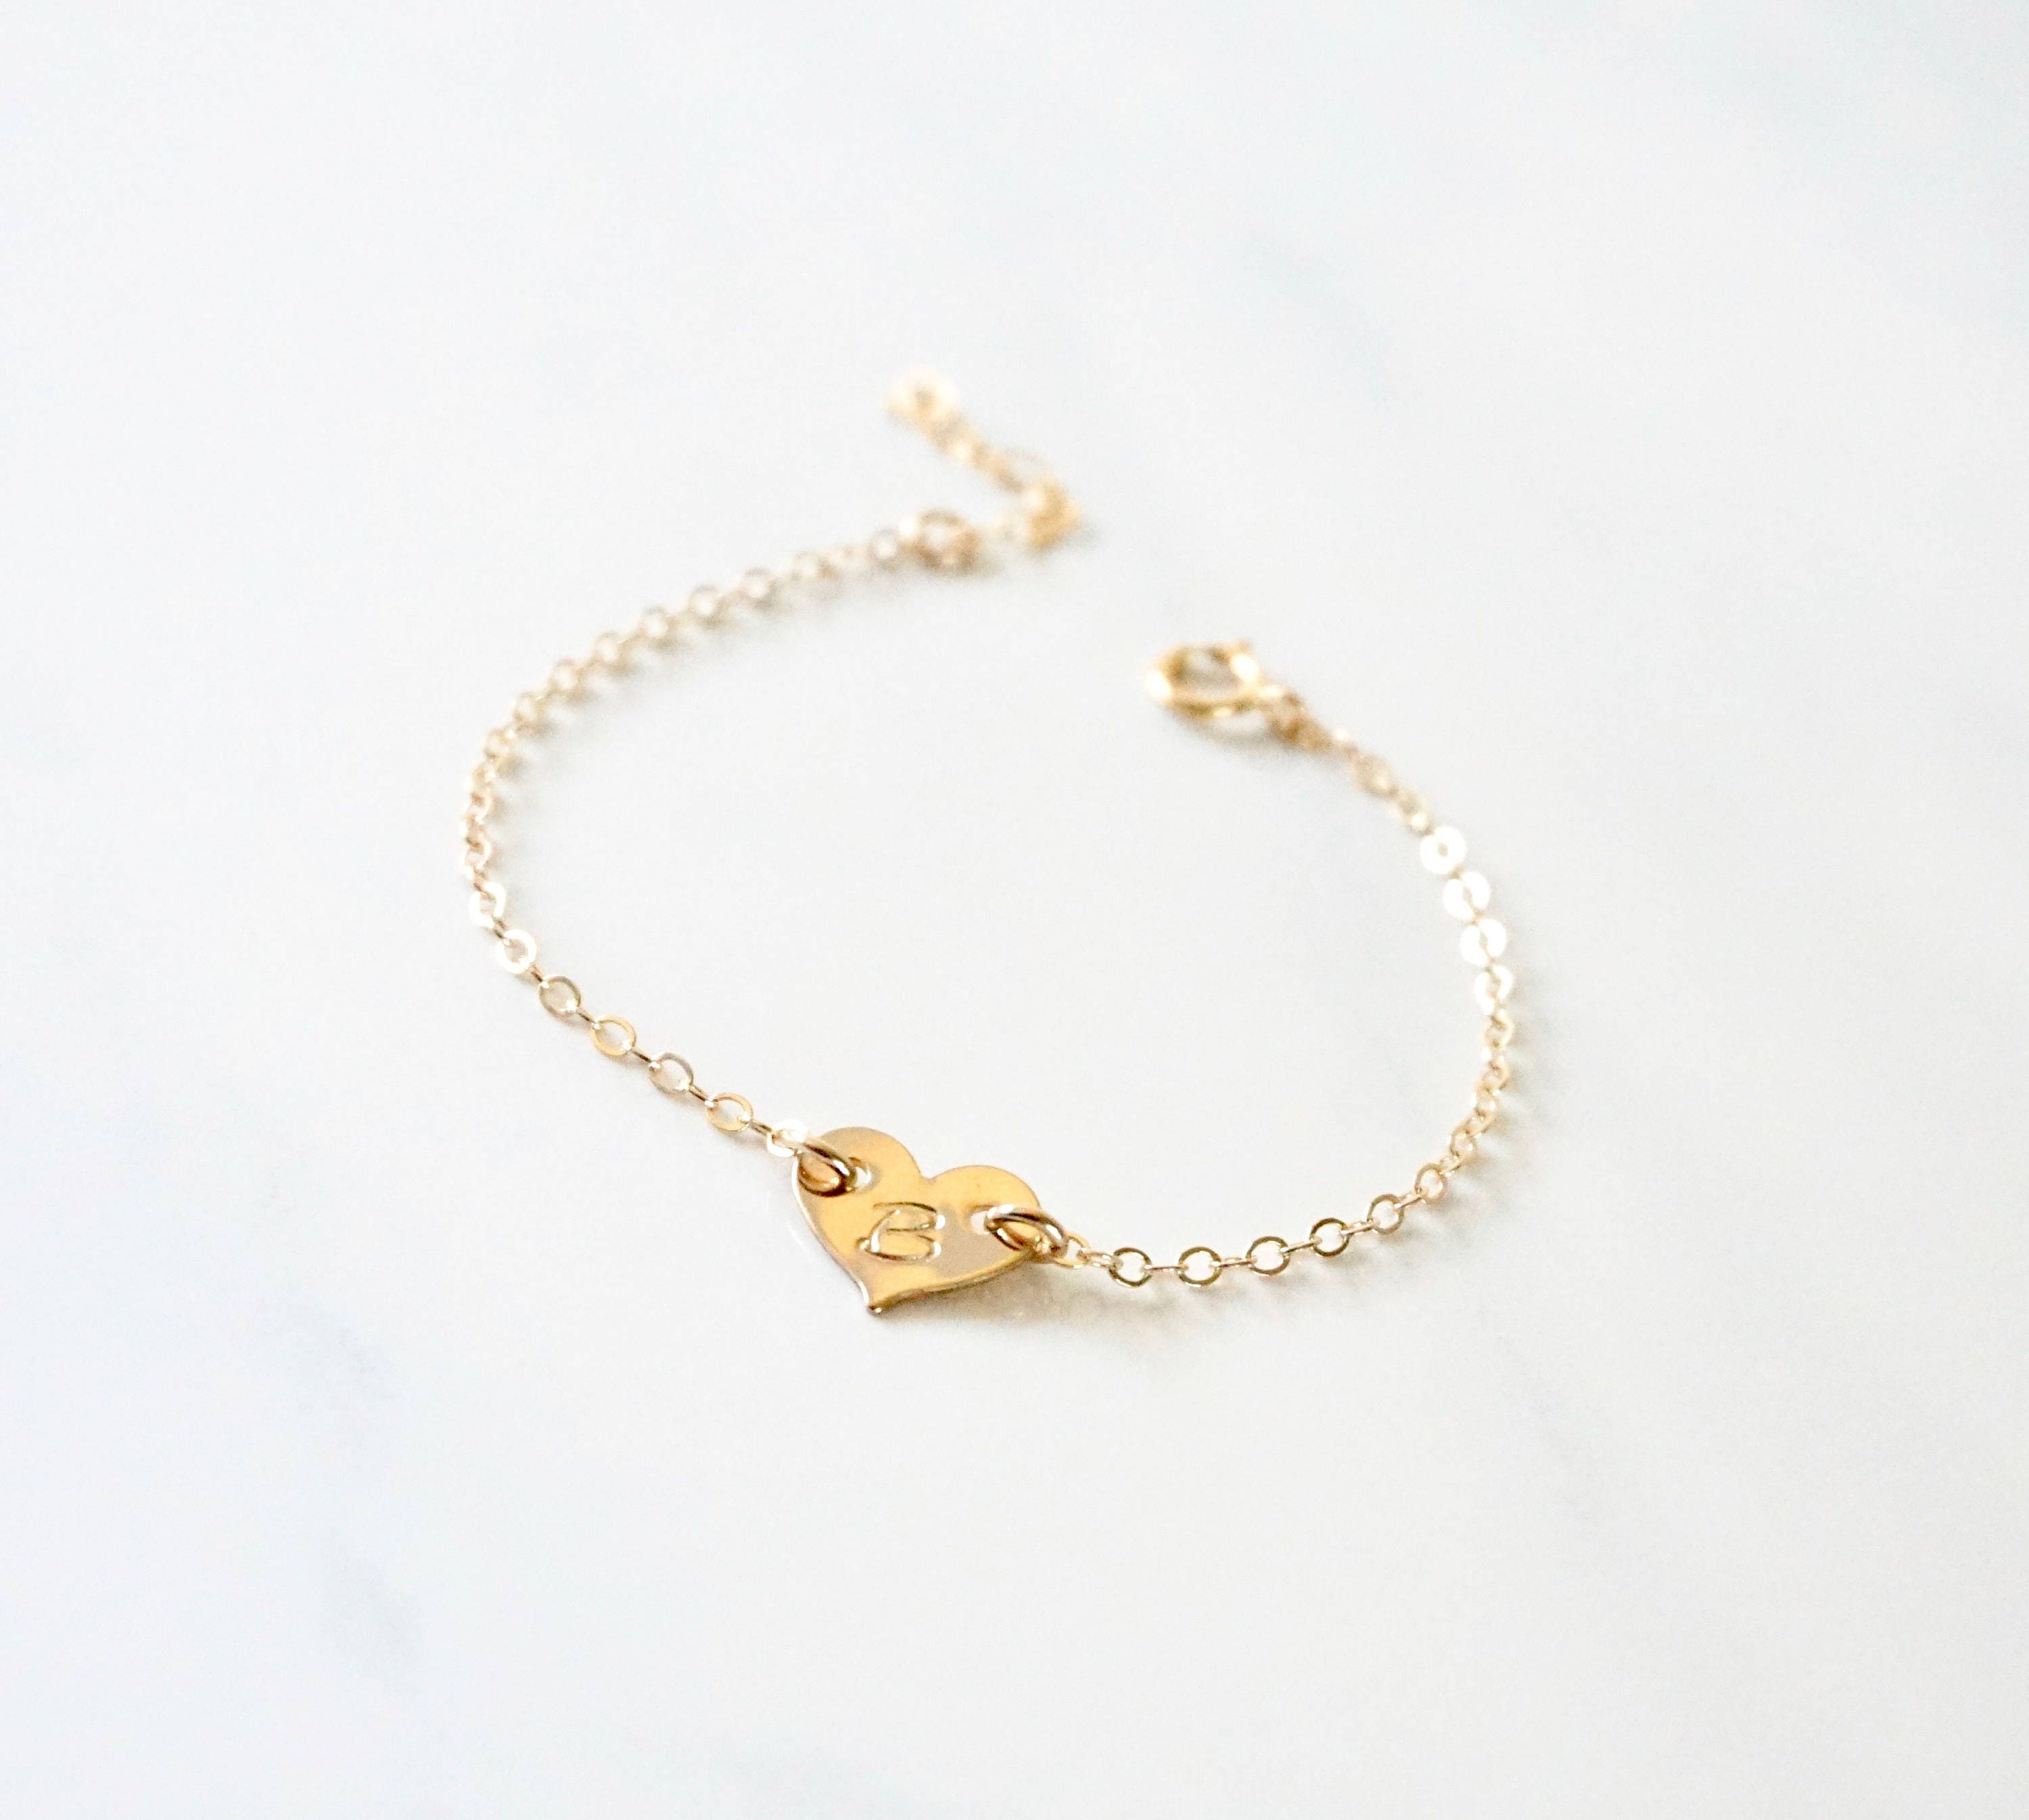 metallic gold jewelry michael heart normal in bracelet kors embellished pave lyst tone product gallery pav charm